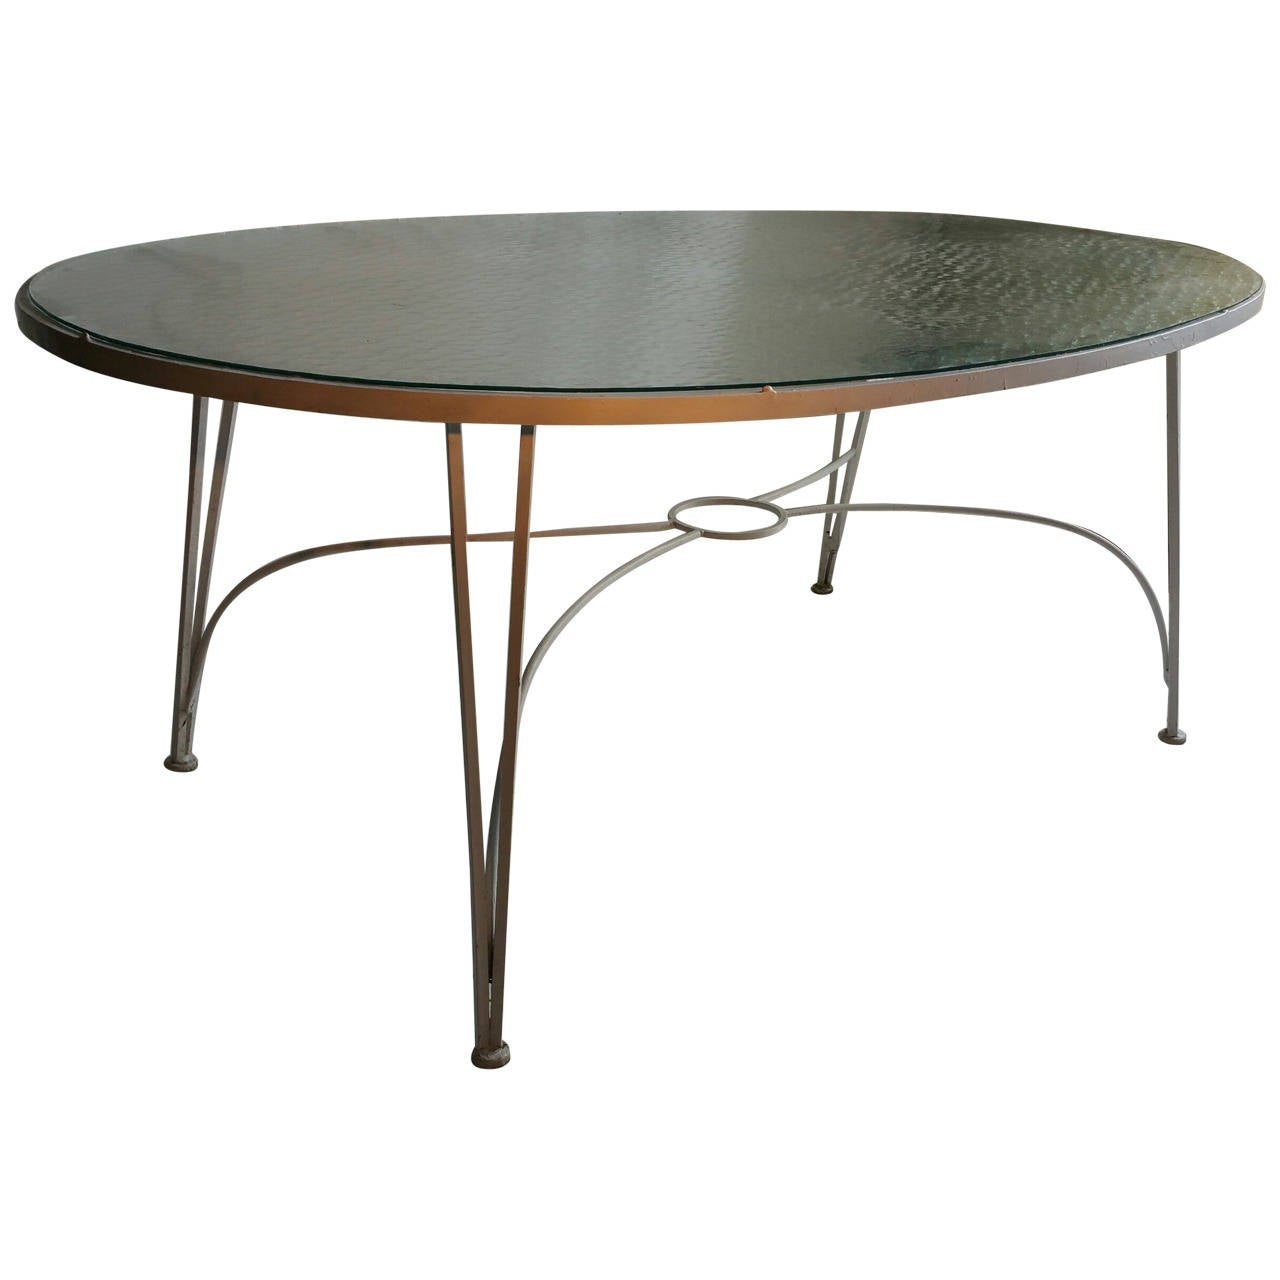 ... Russell Woodard Wrought Iron Dining Table, Pinecrest at 1stdibs